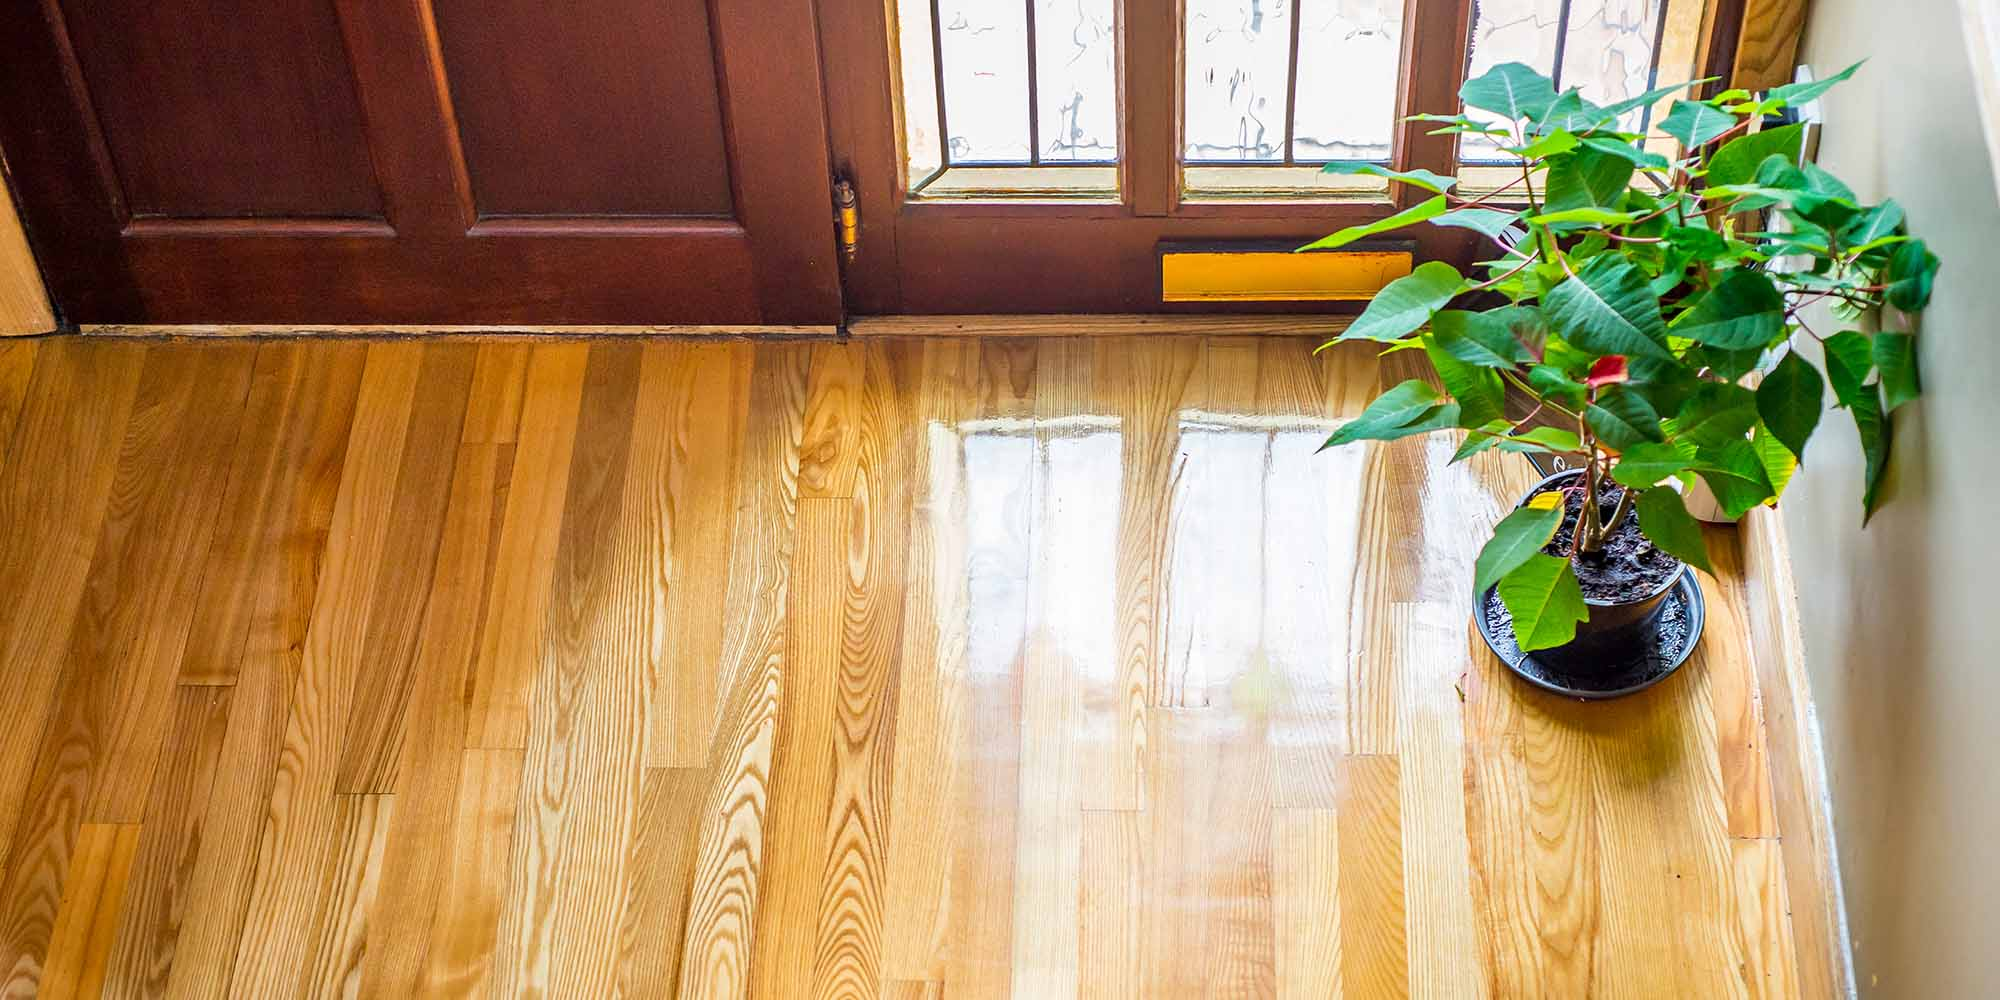 Image of Ash Hardwood flooring fitted in hall of house, includes potted plant and bottom of front door